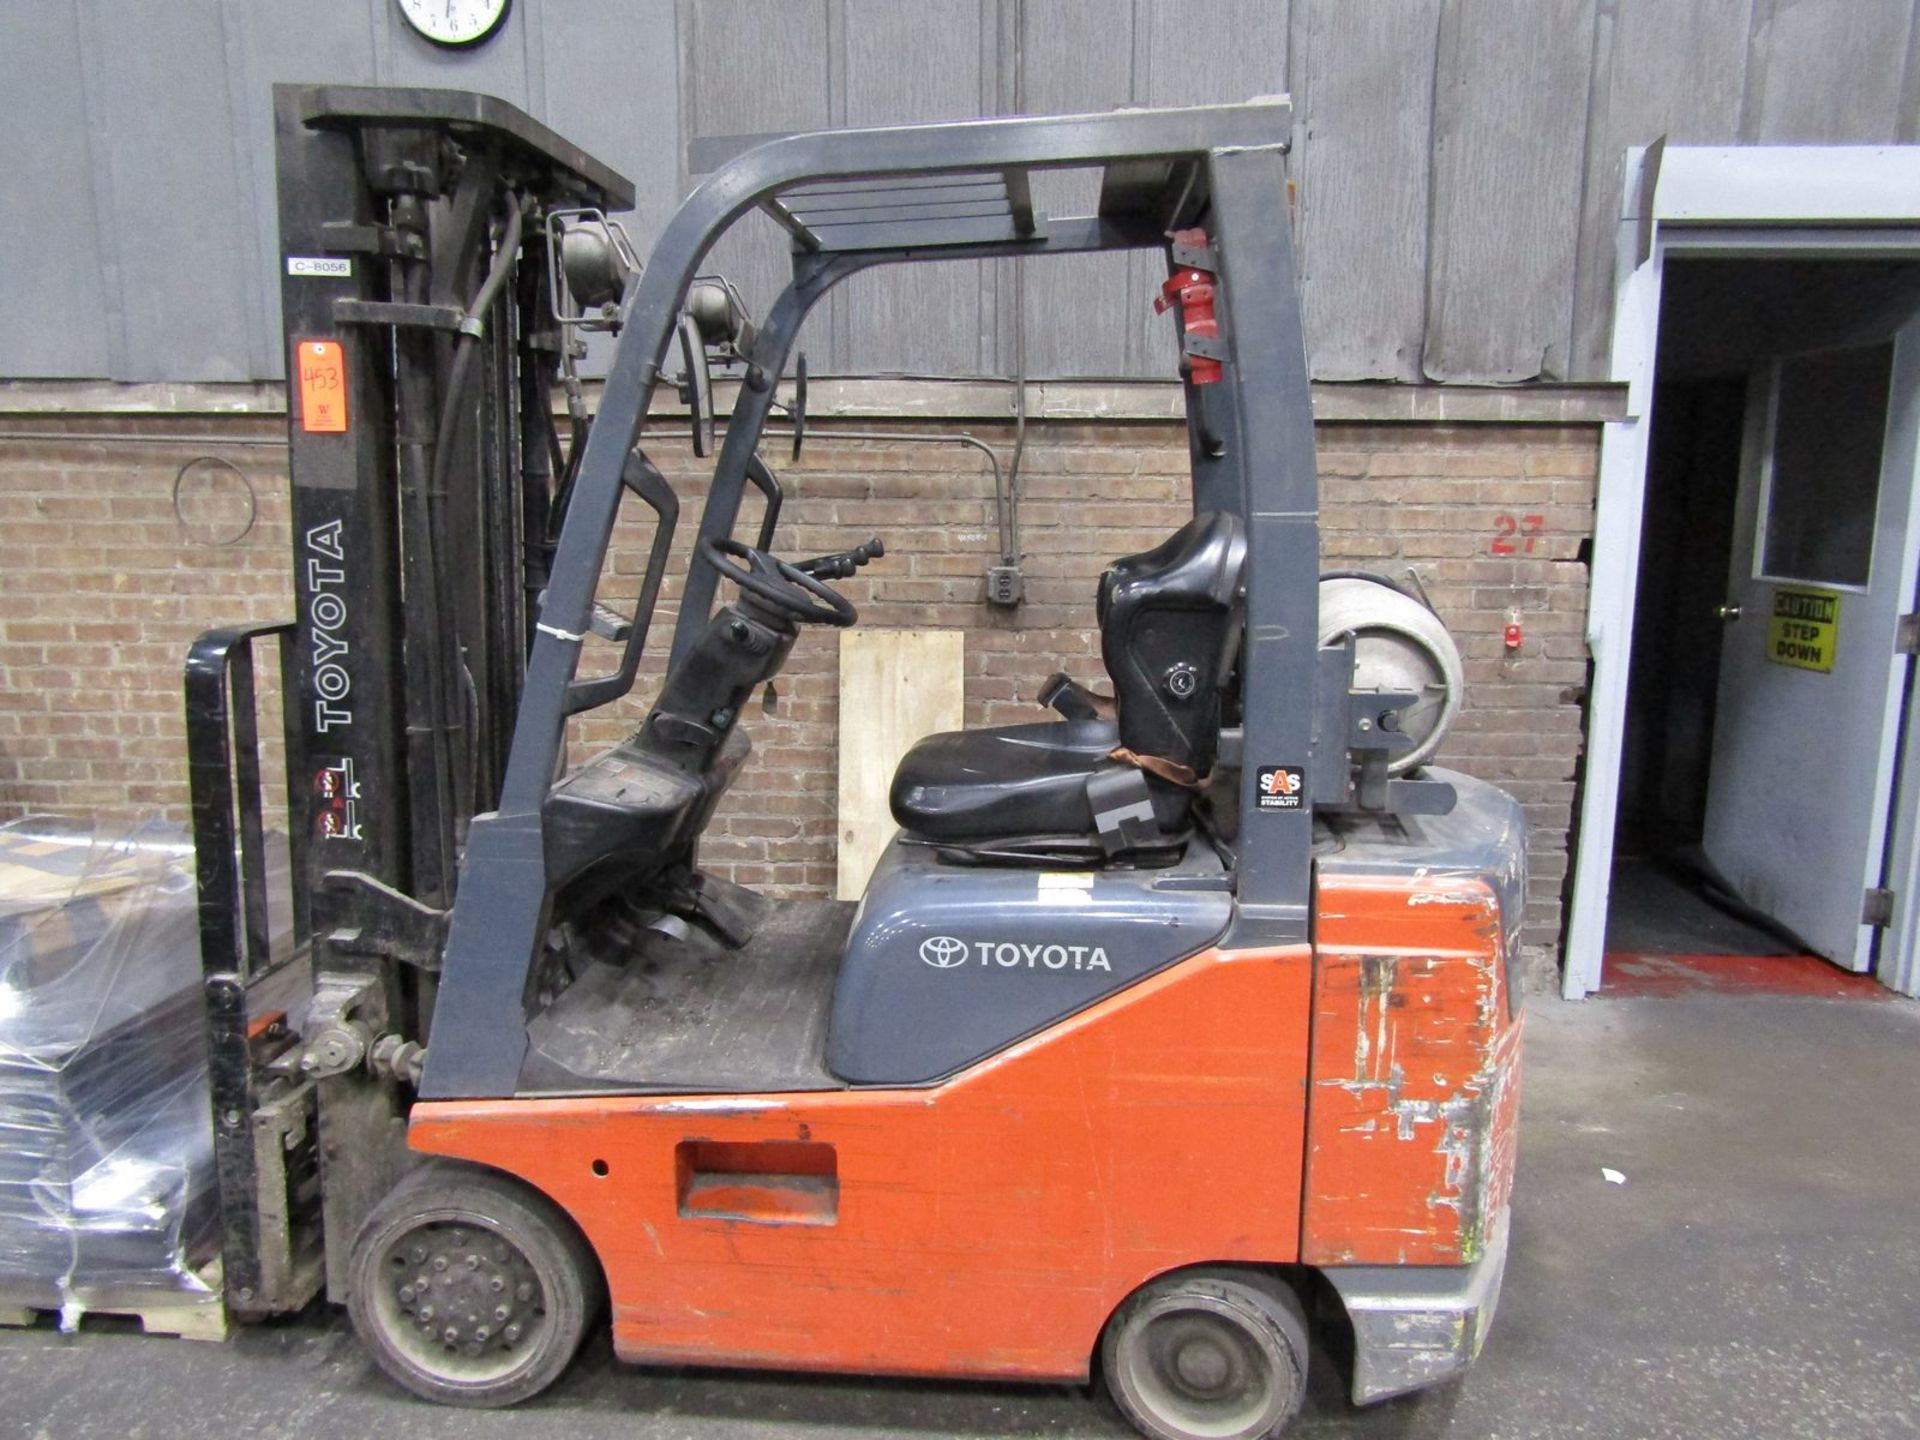 Toyota 5,000 lb. Cap. (approx.) Model 8FGCSU20 LP Fork Lift Truck, S/N: 20712; with 3-Stage Mast, - Image 6 of 8